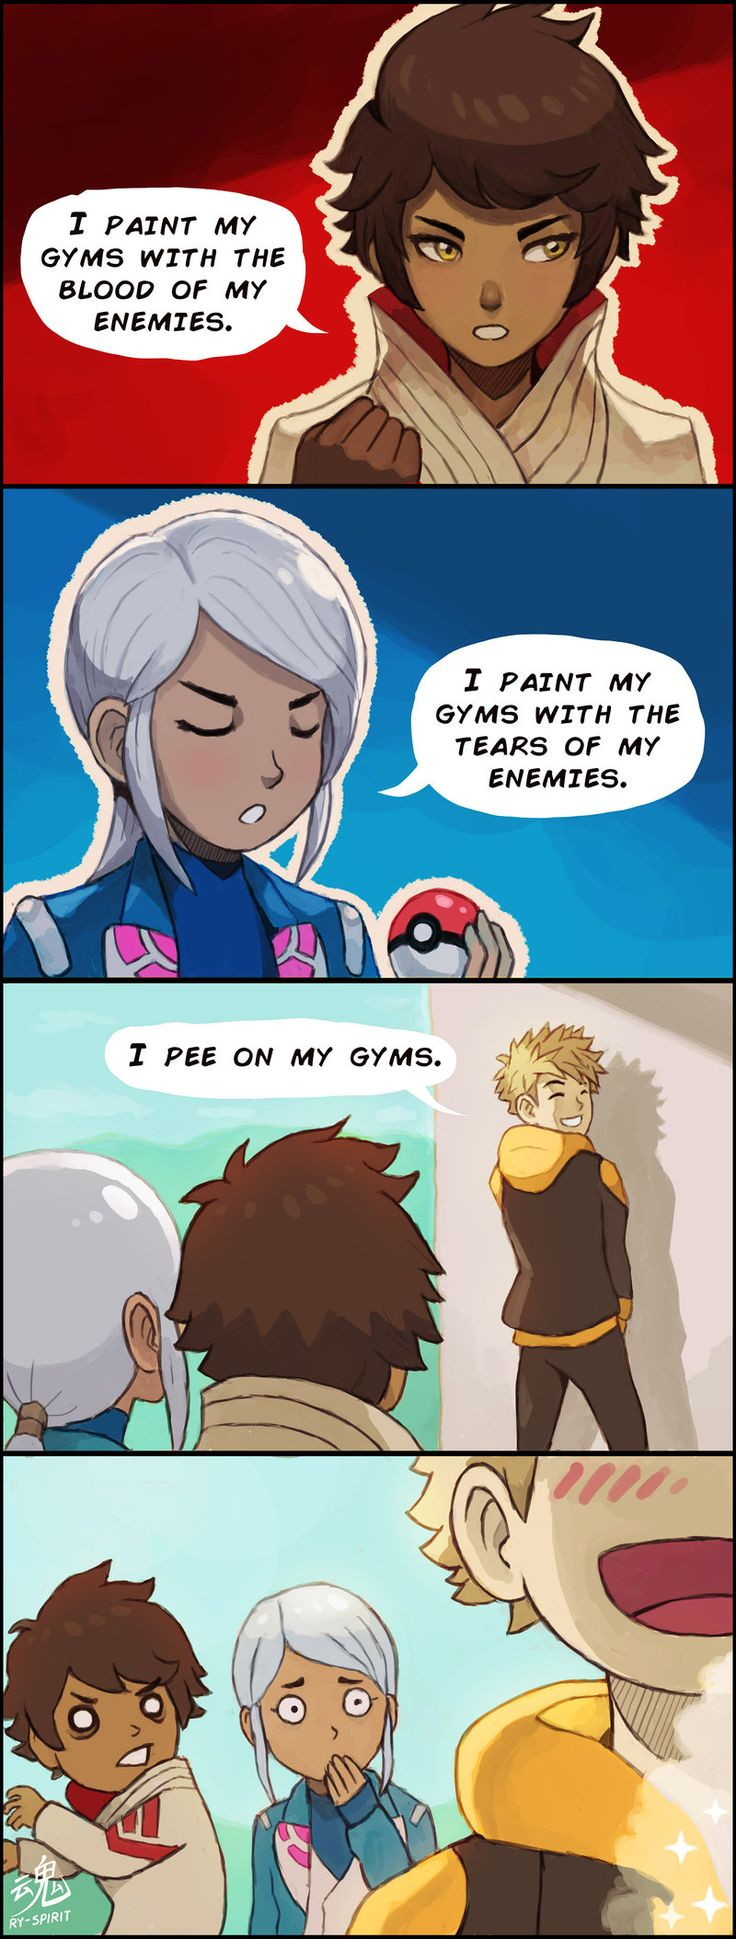 17 best ideas about team leader leadership tips did a pokemon go team leaders fan art this idea came from a conversation i had my friend salmonsuzie when we were joking around about our teams s